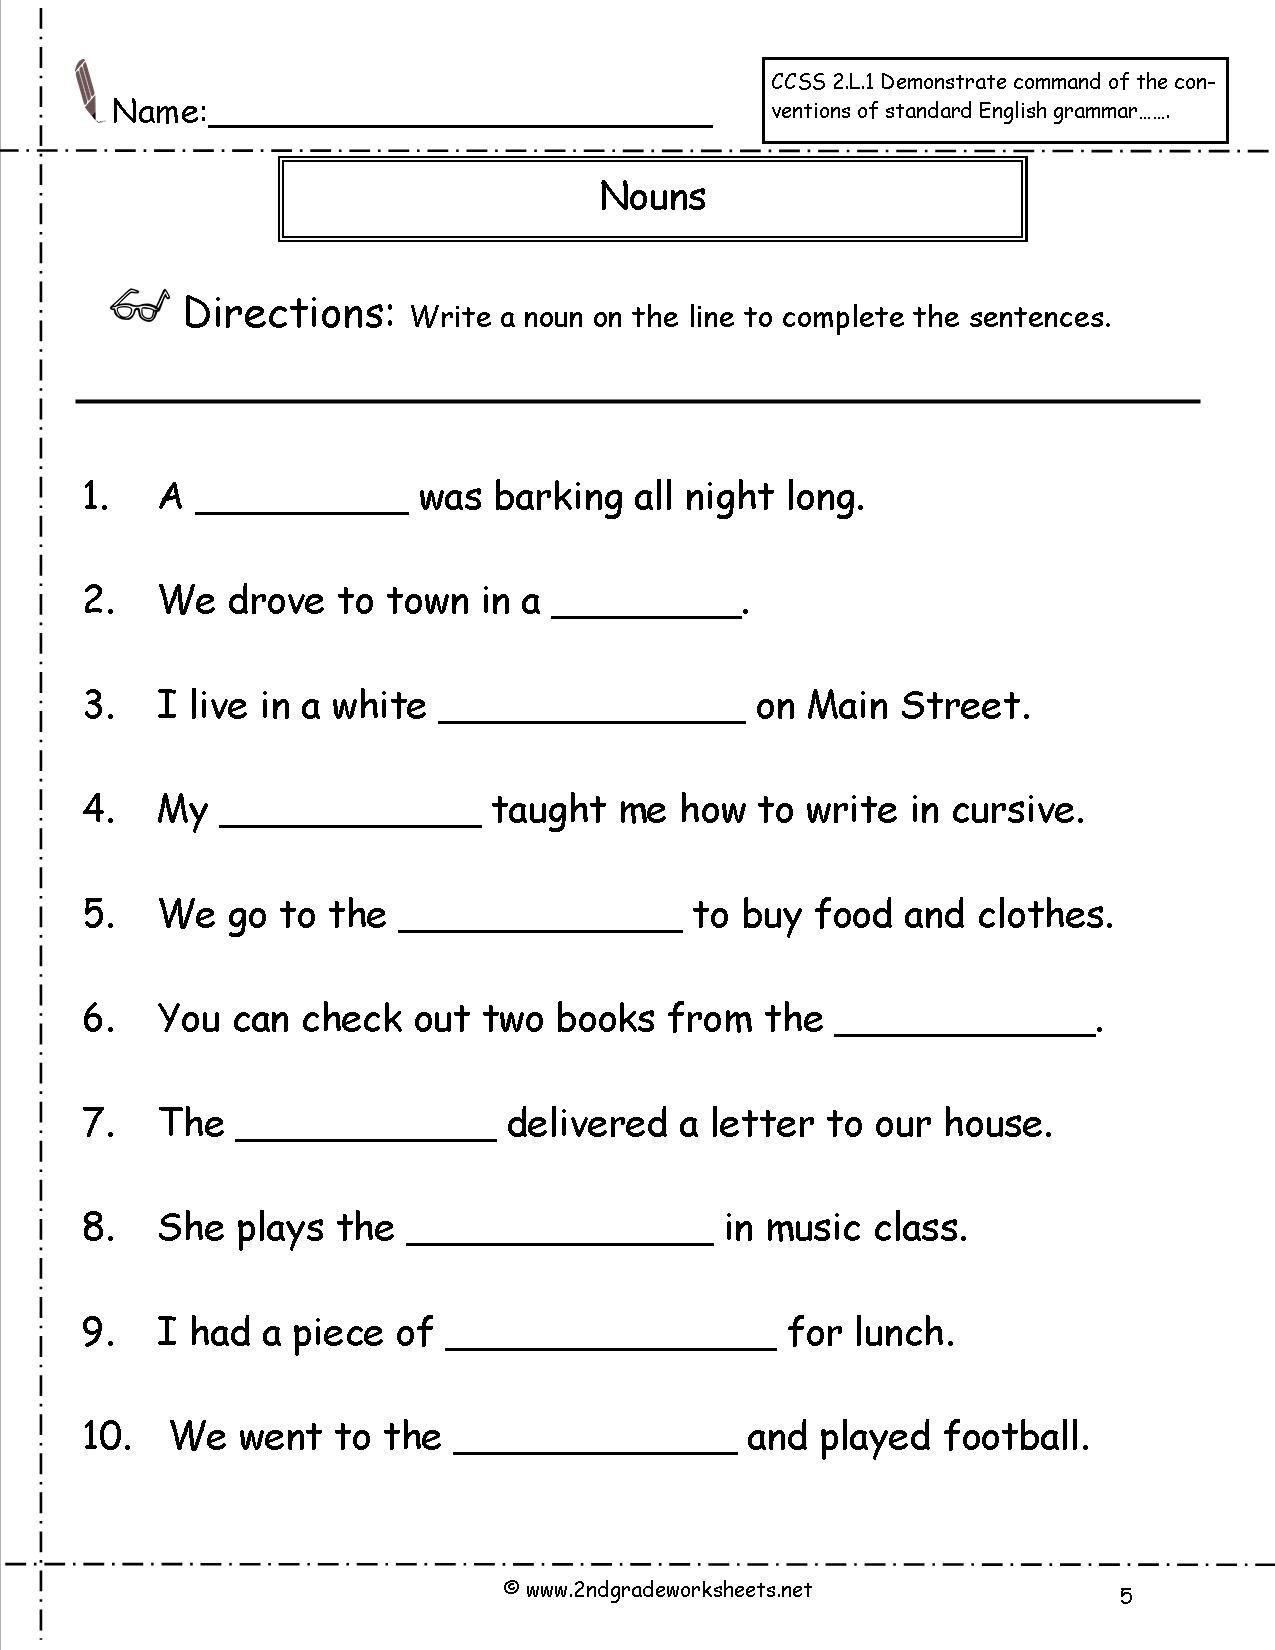 hight resolution of Concrete And Abstract Nouns Worksheets And Task Cards: St Patrick's on Best  Worksheets Collection 3348